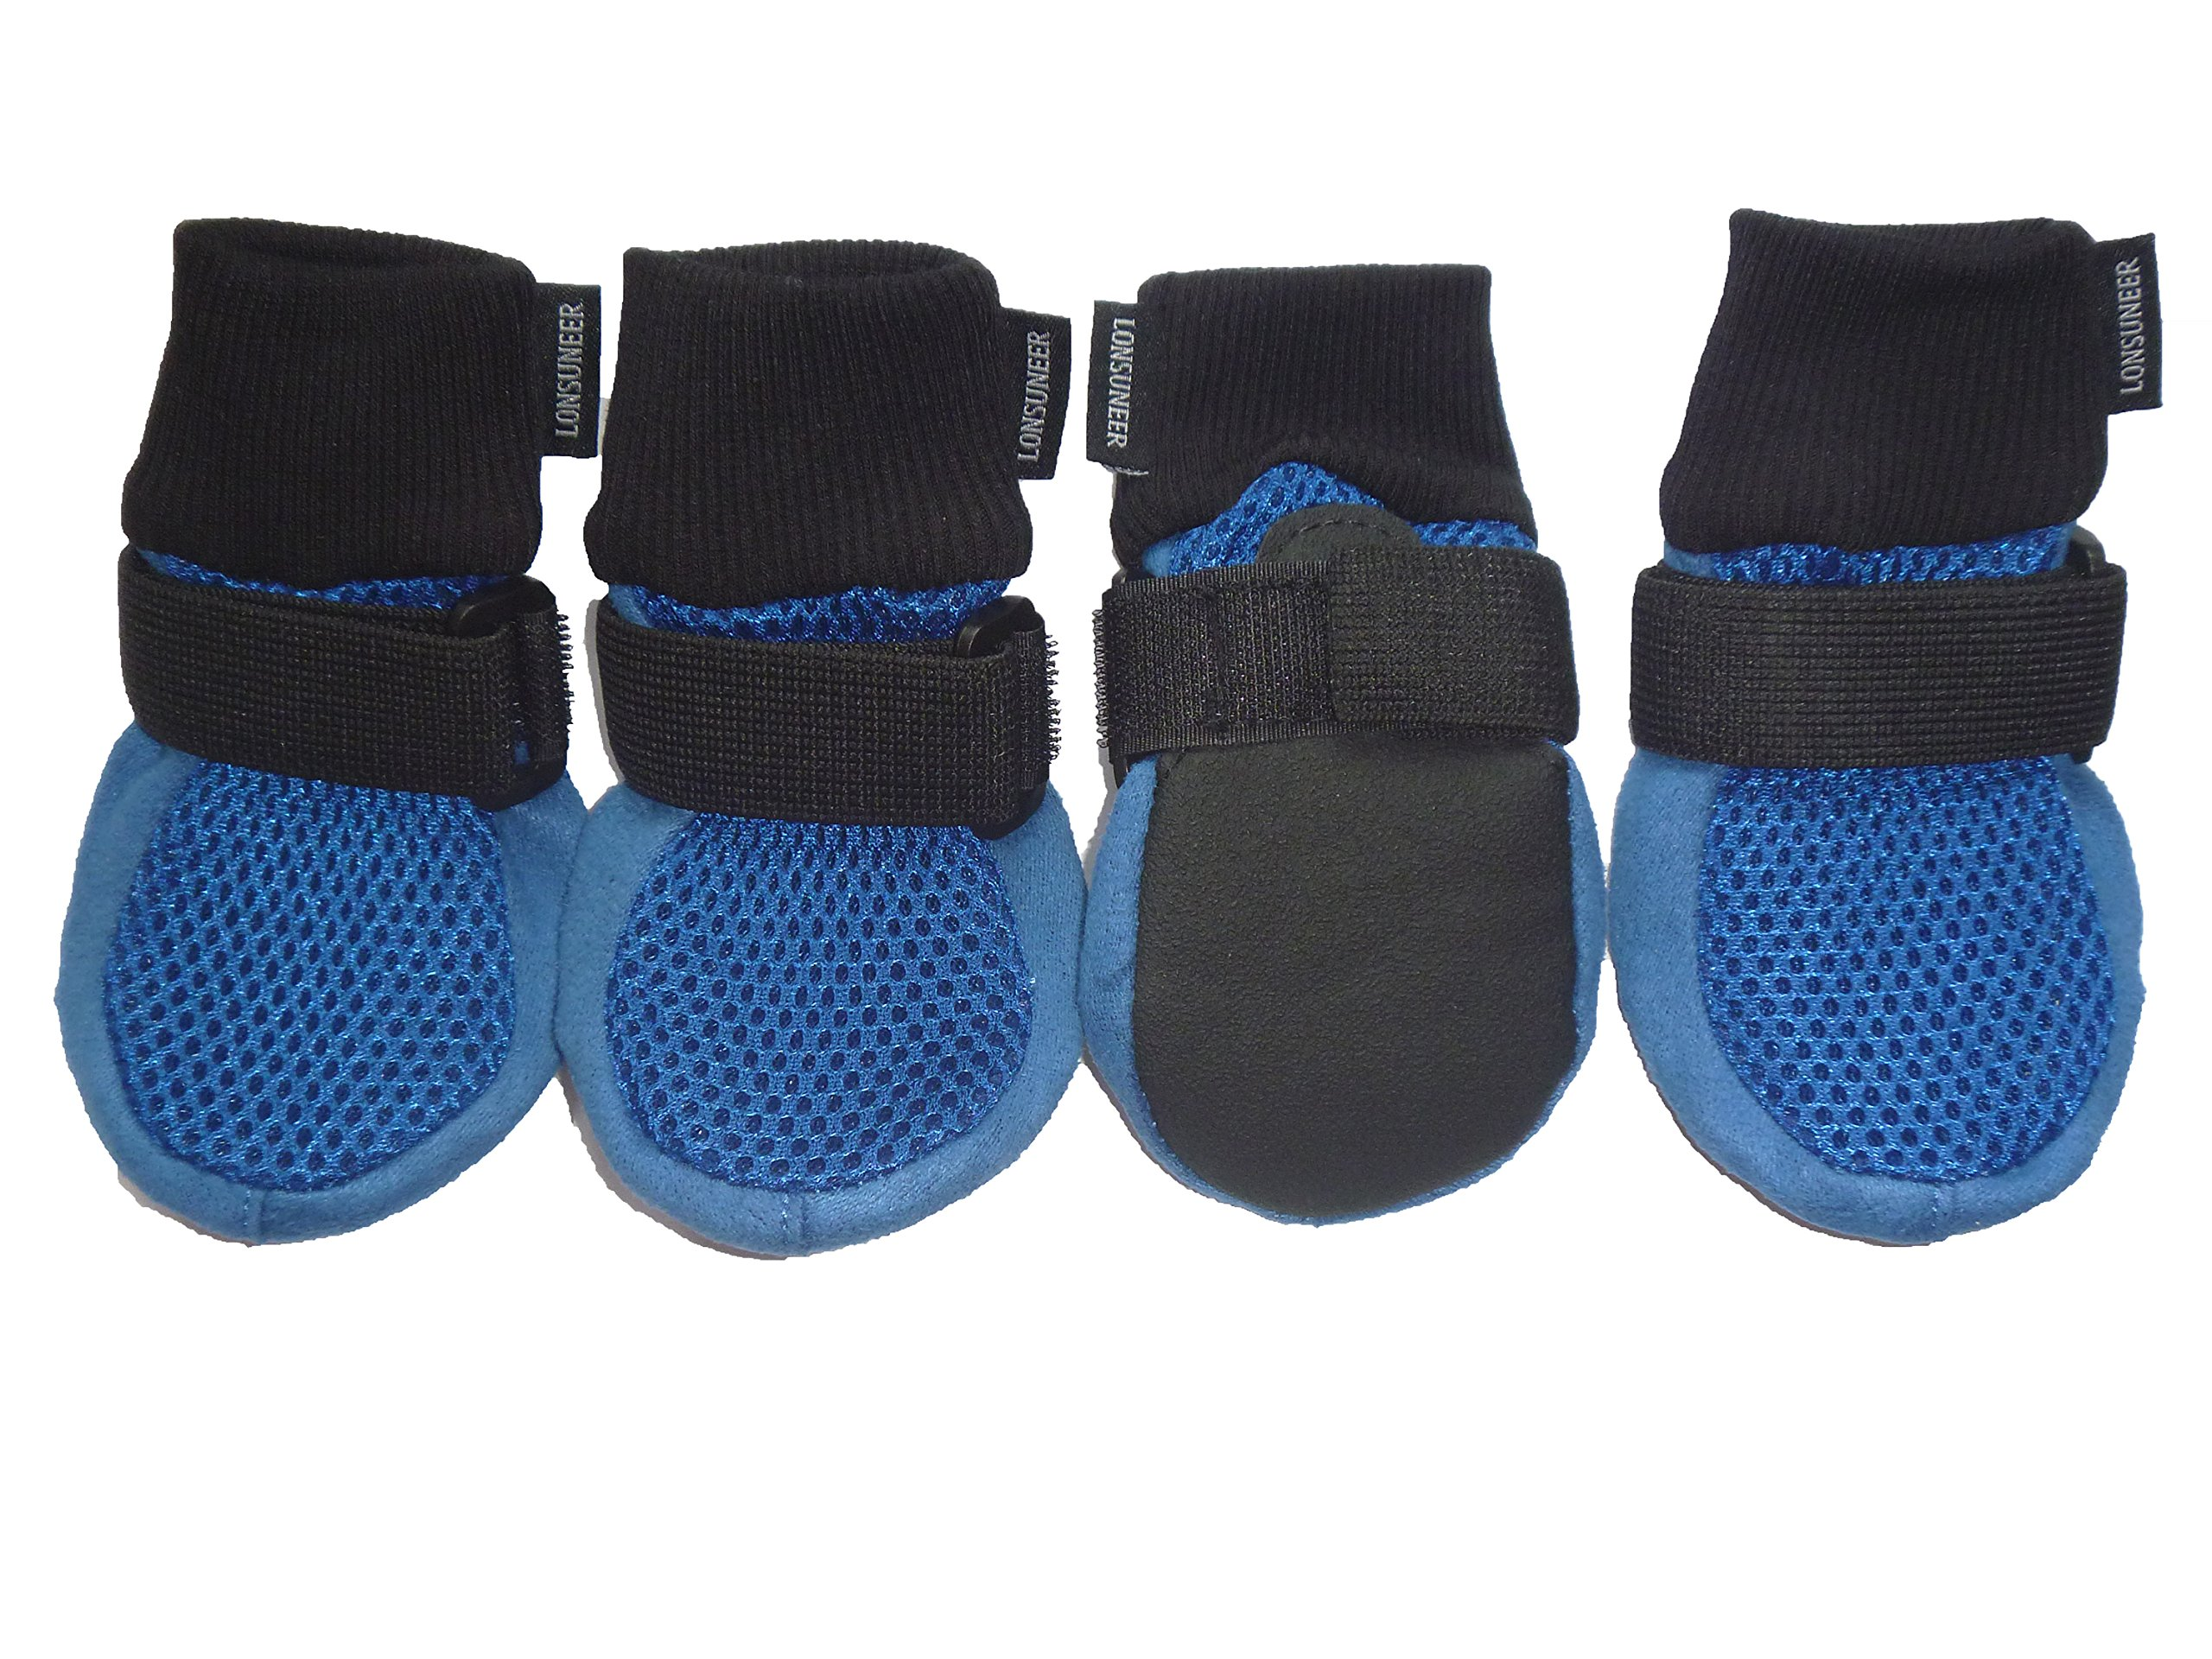 LONSUNEER Dog Boots Breathable and Protect Paws with Soft Nonslip Soles Blue Color Size Medium - Inner Sole Width 2.56 Inch by LONSUNEER